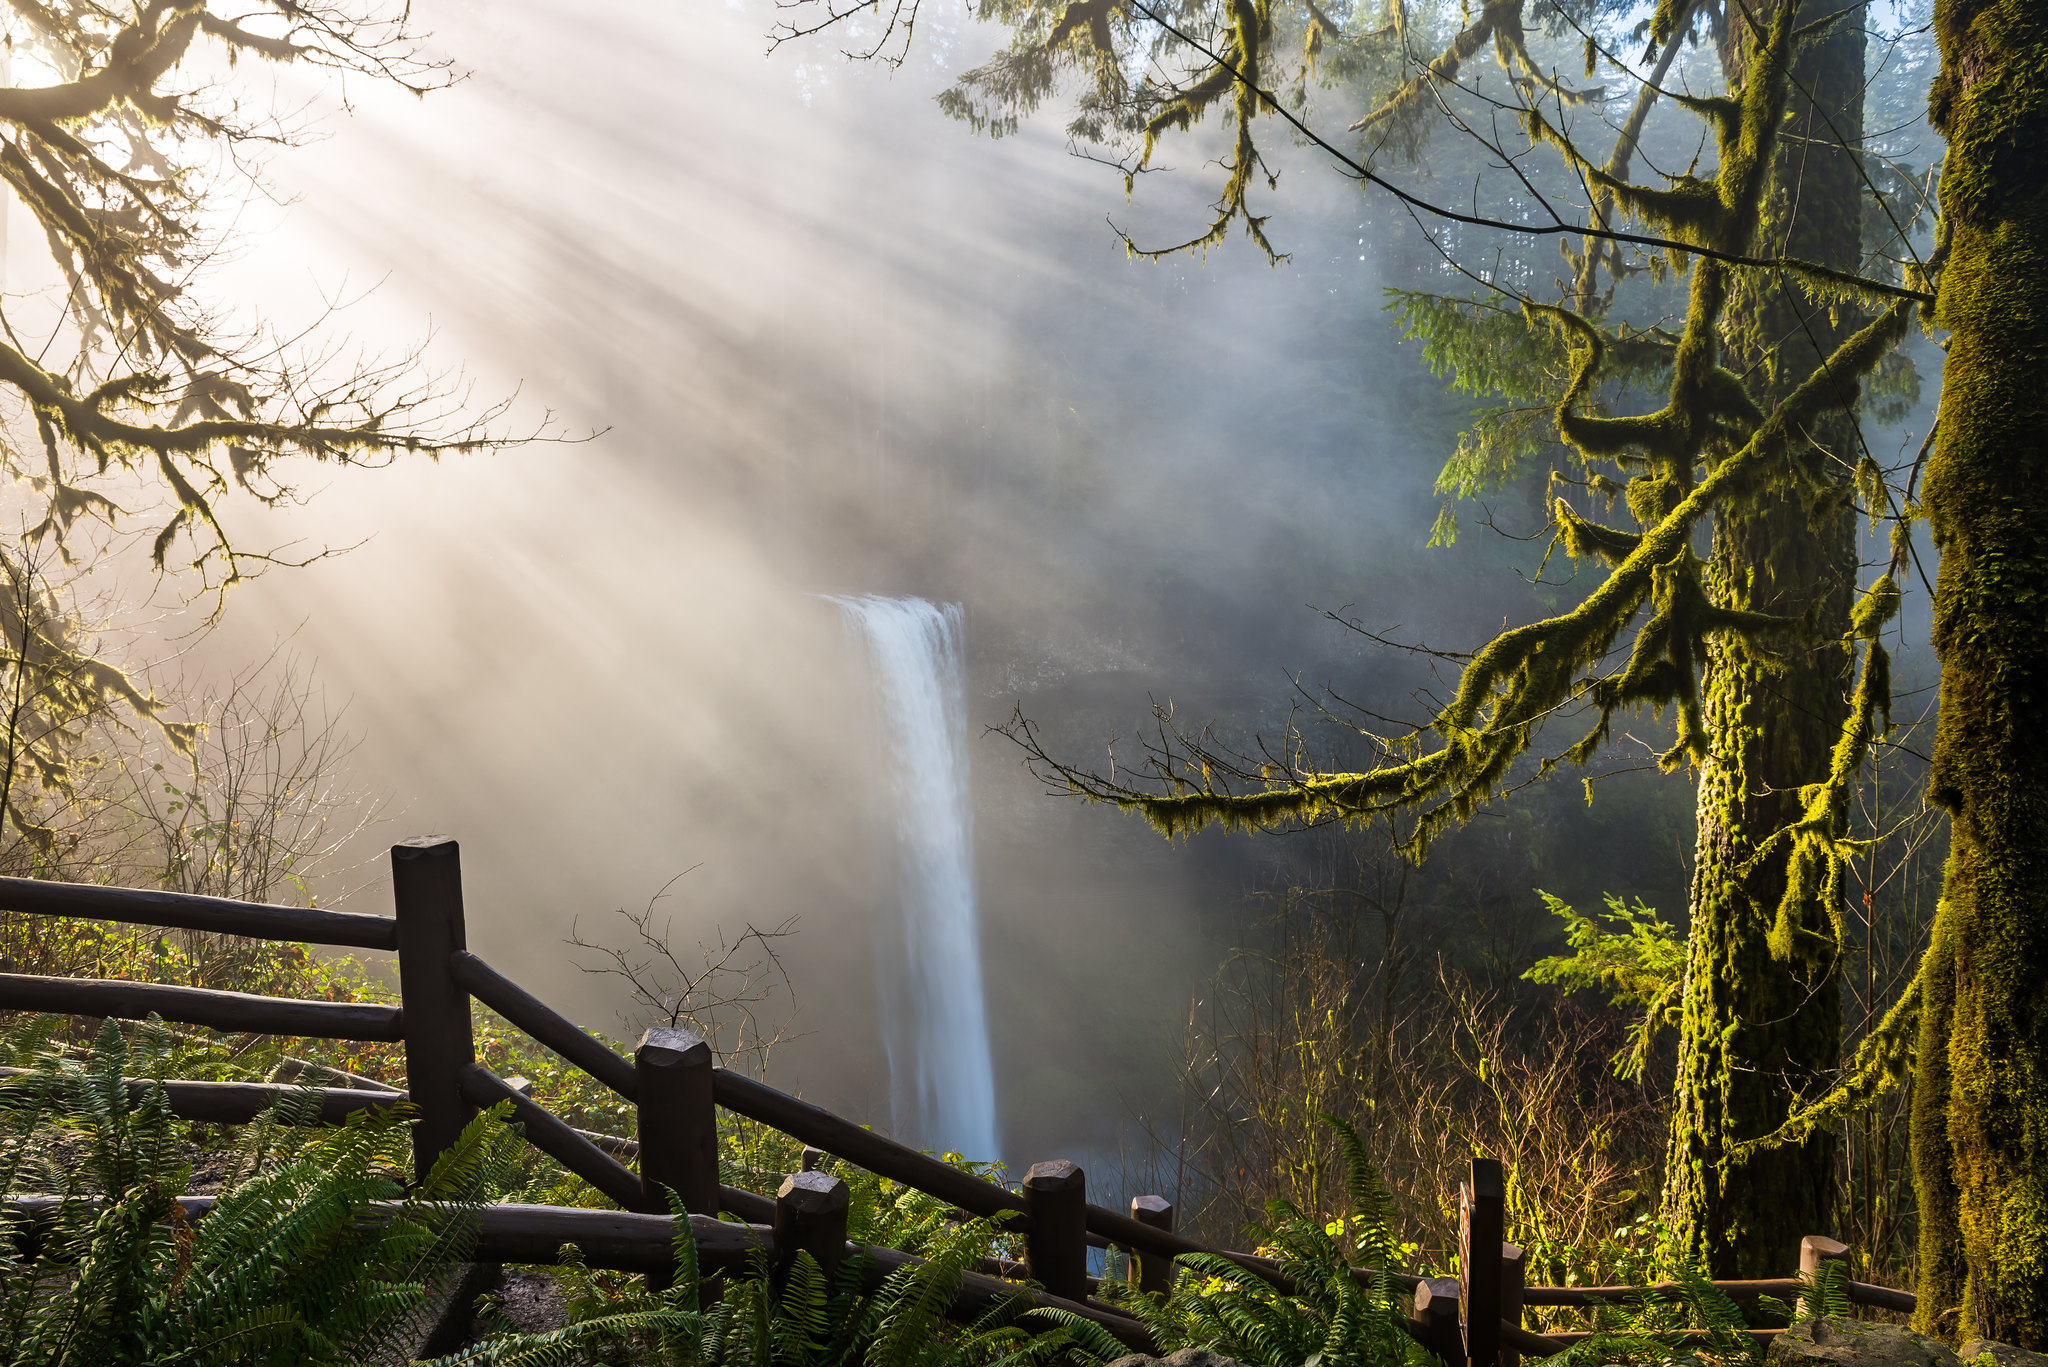 A gorgeous waterfall in the fog.